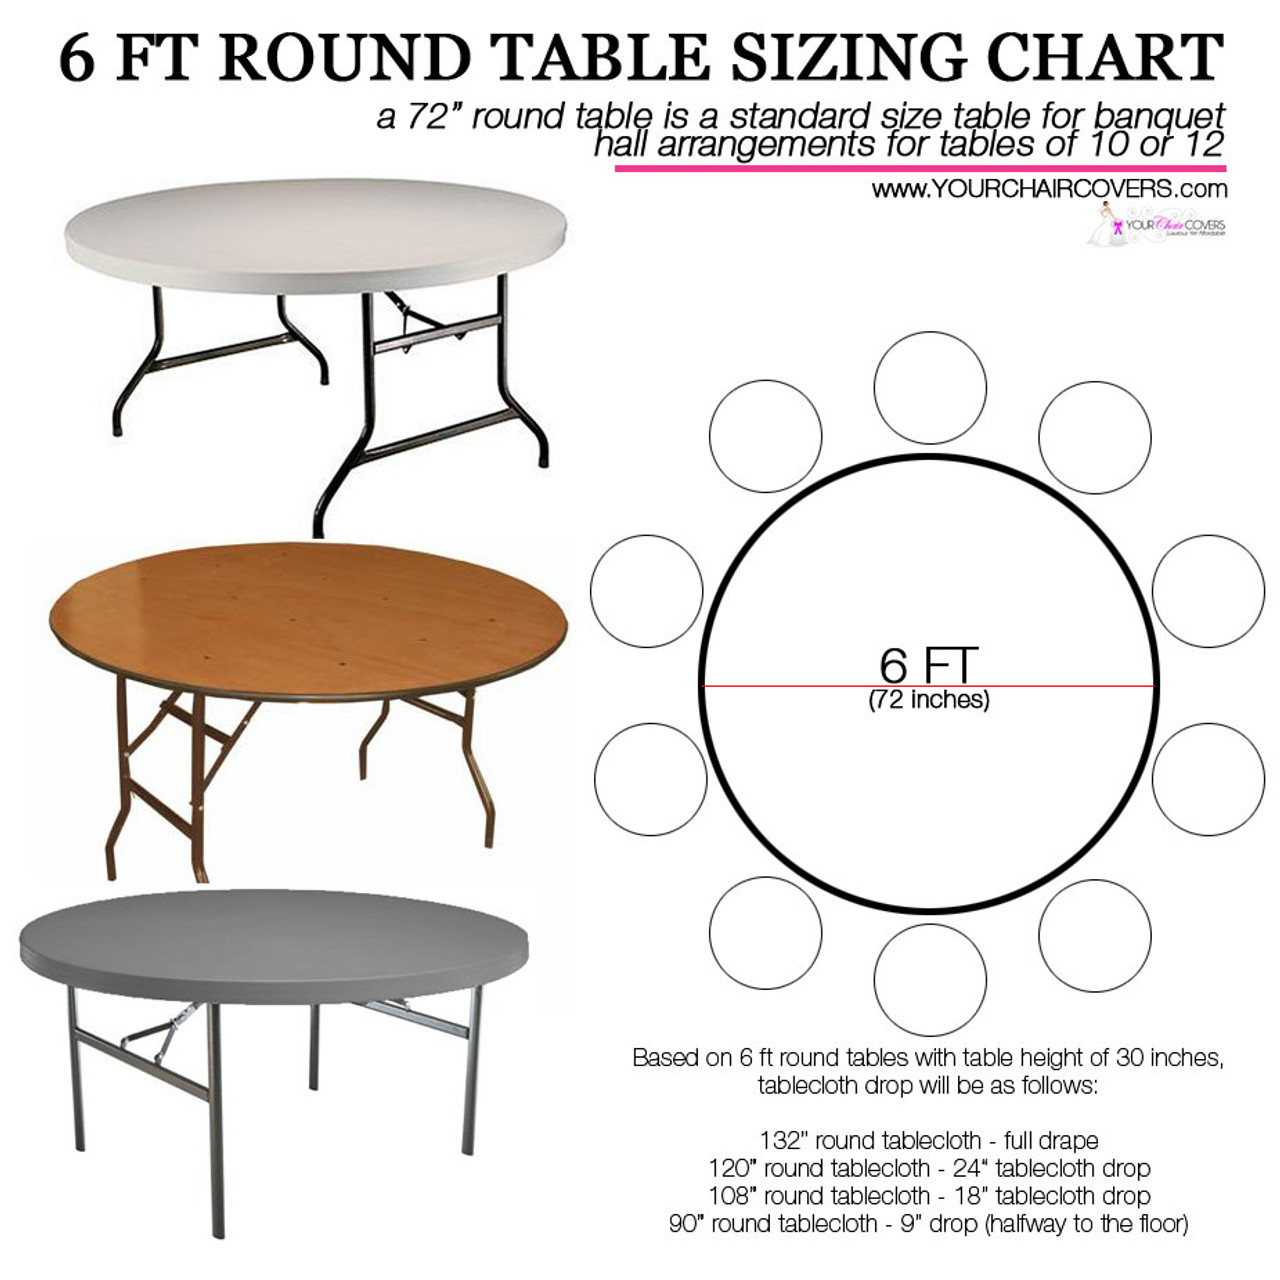 ... How To Buy Ivory Satin Tablecloths For 6 Ft Round Tables? Use This  Tablecloth Sizing